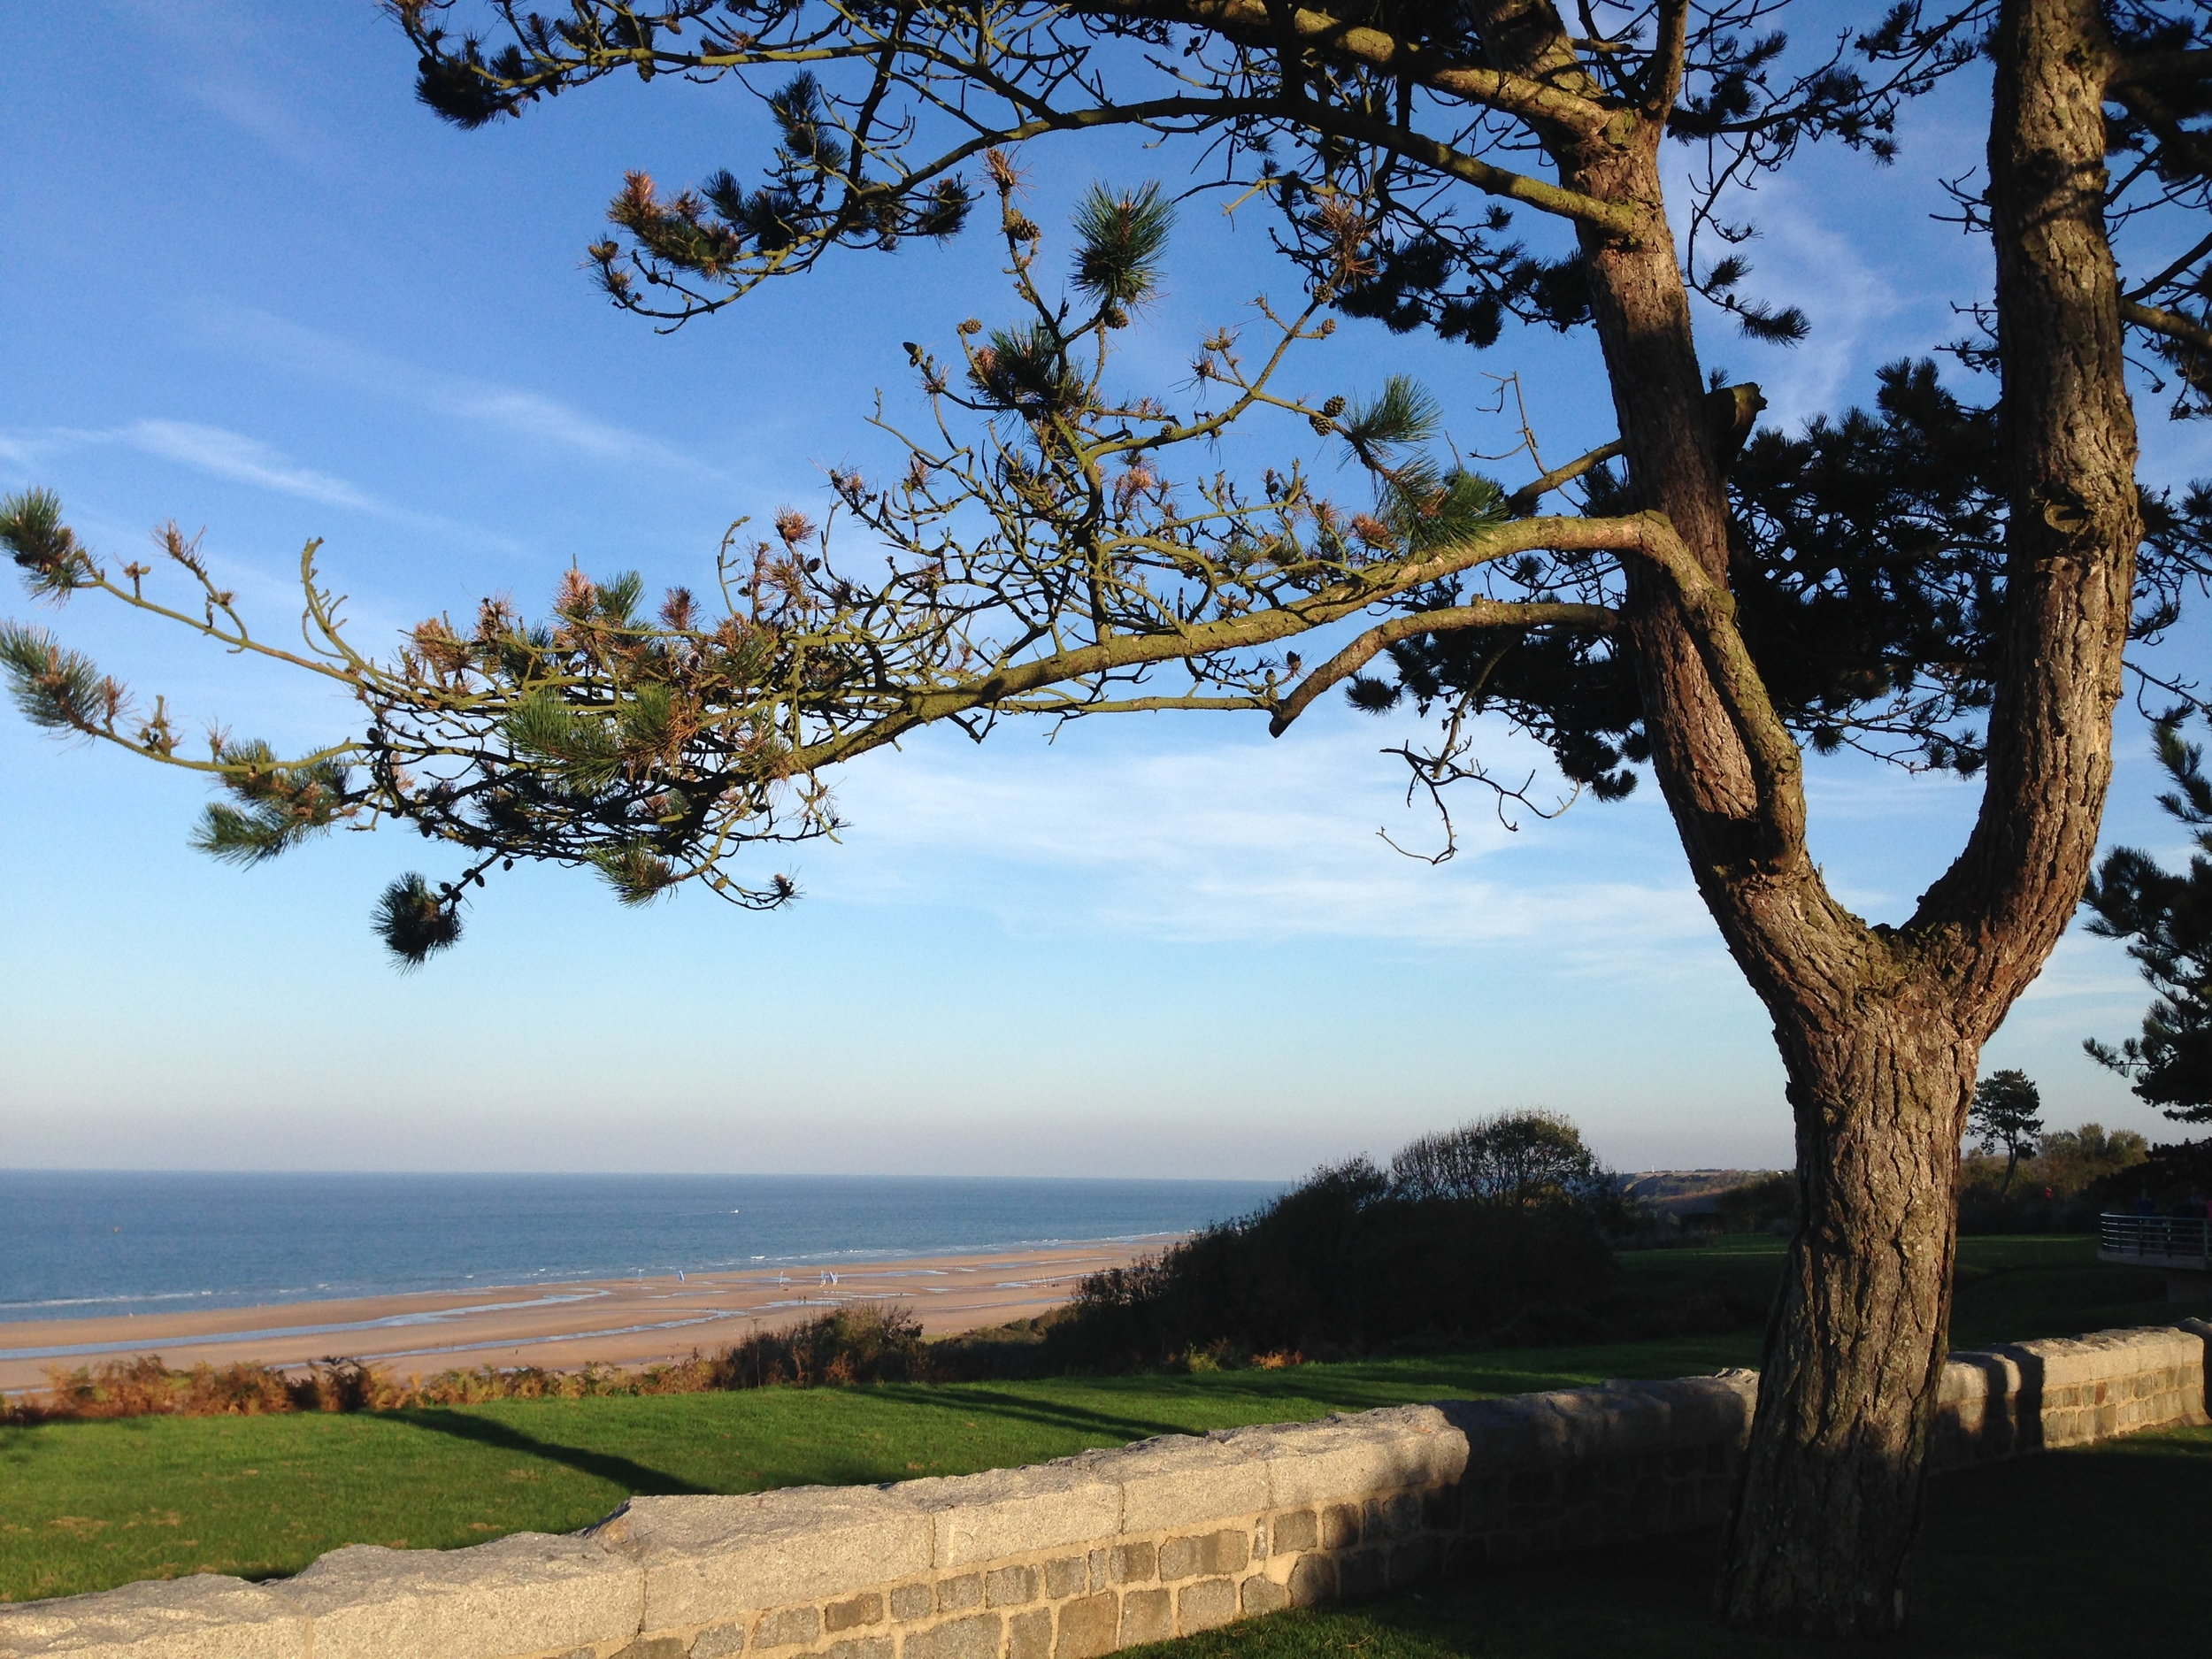 View of the coastline from the Normandy American Cemetery, Colleville-sur-Mer.